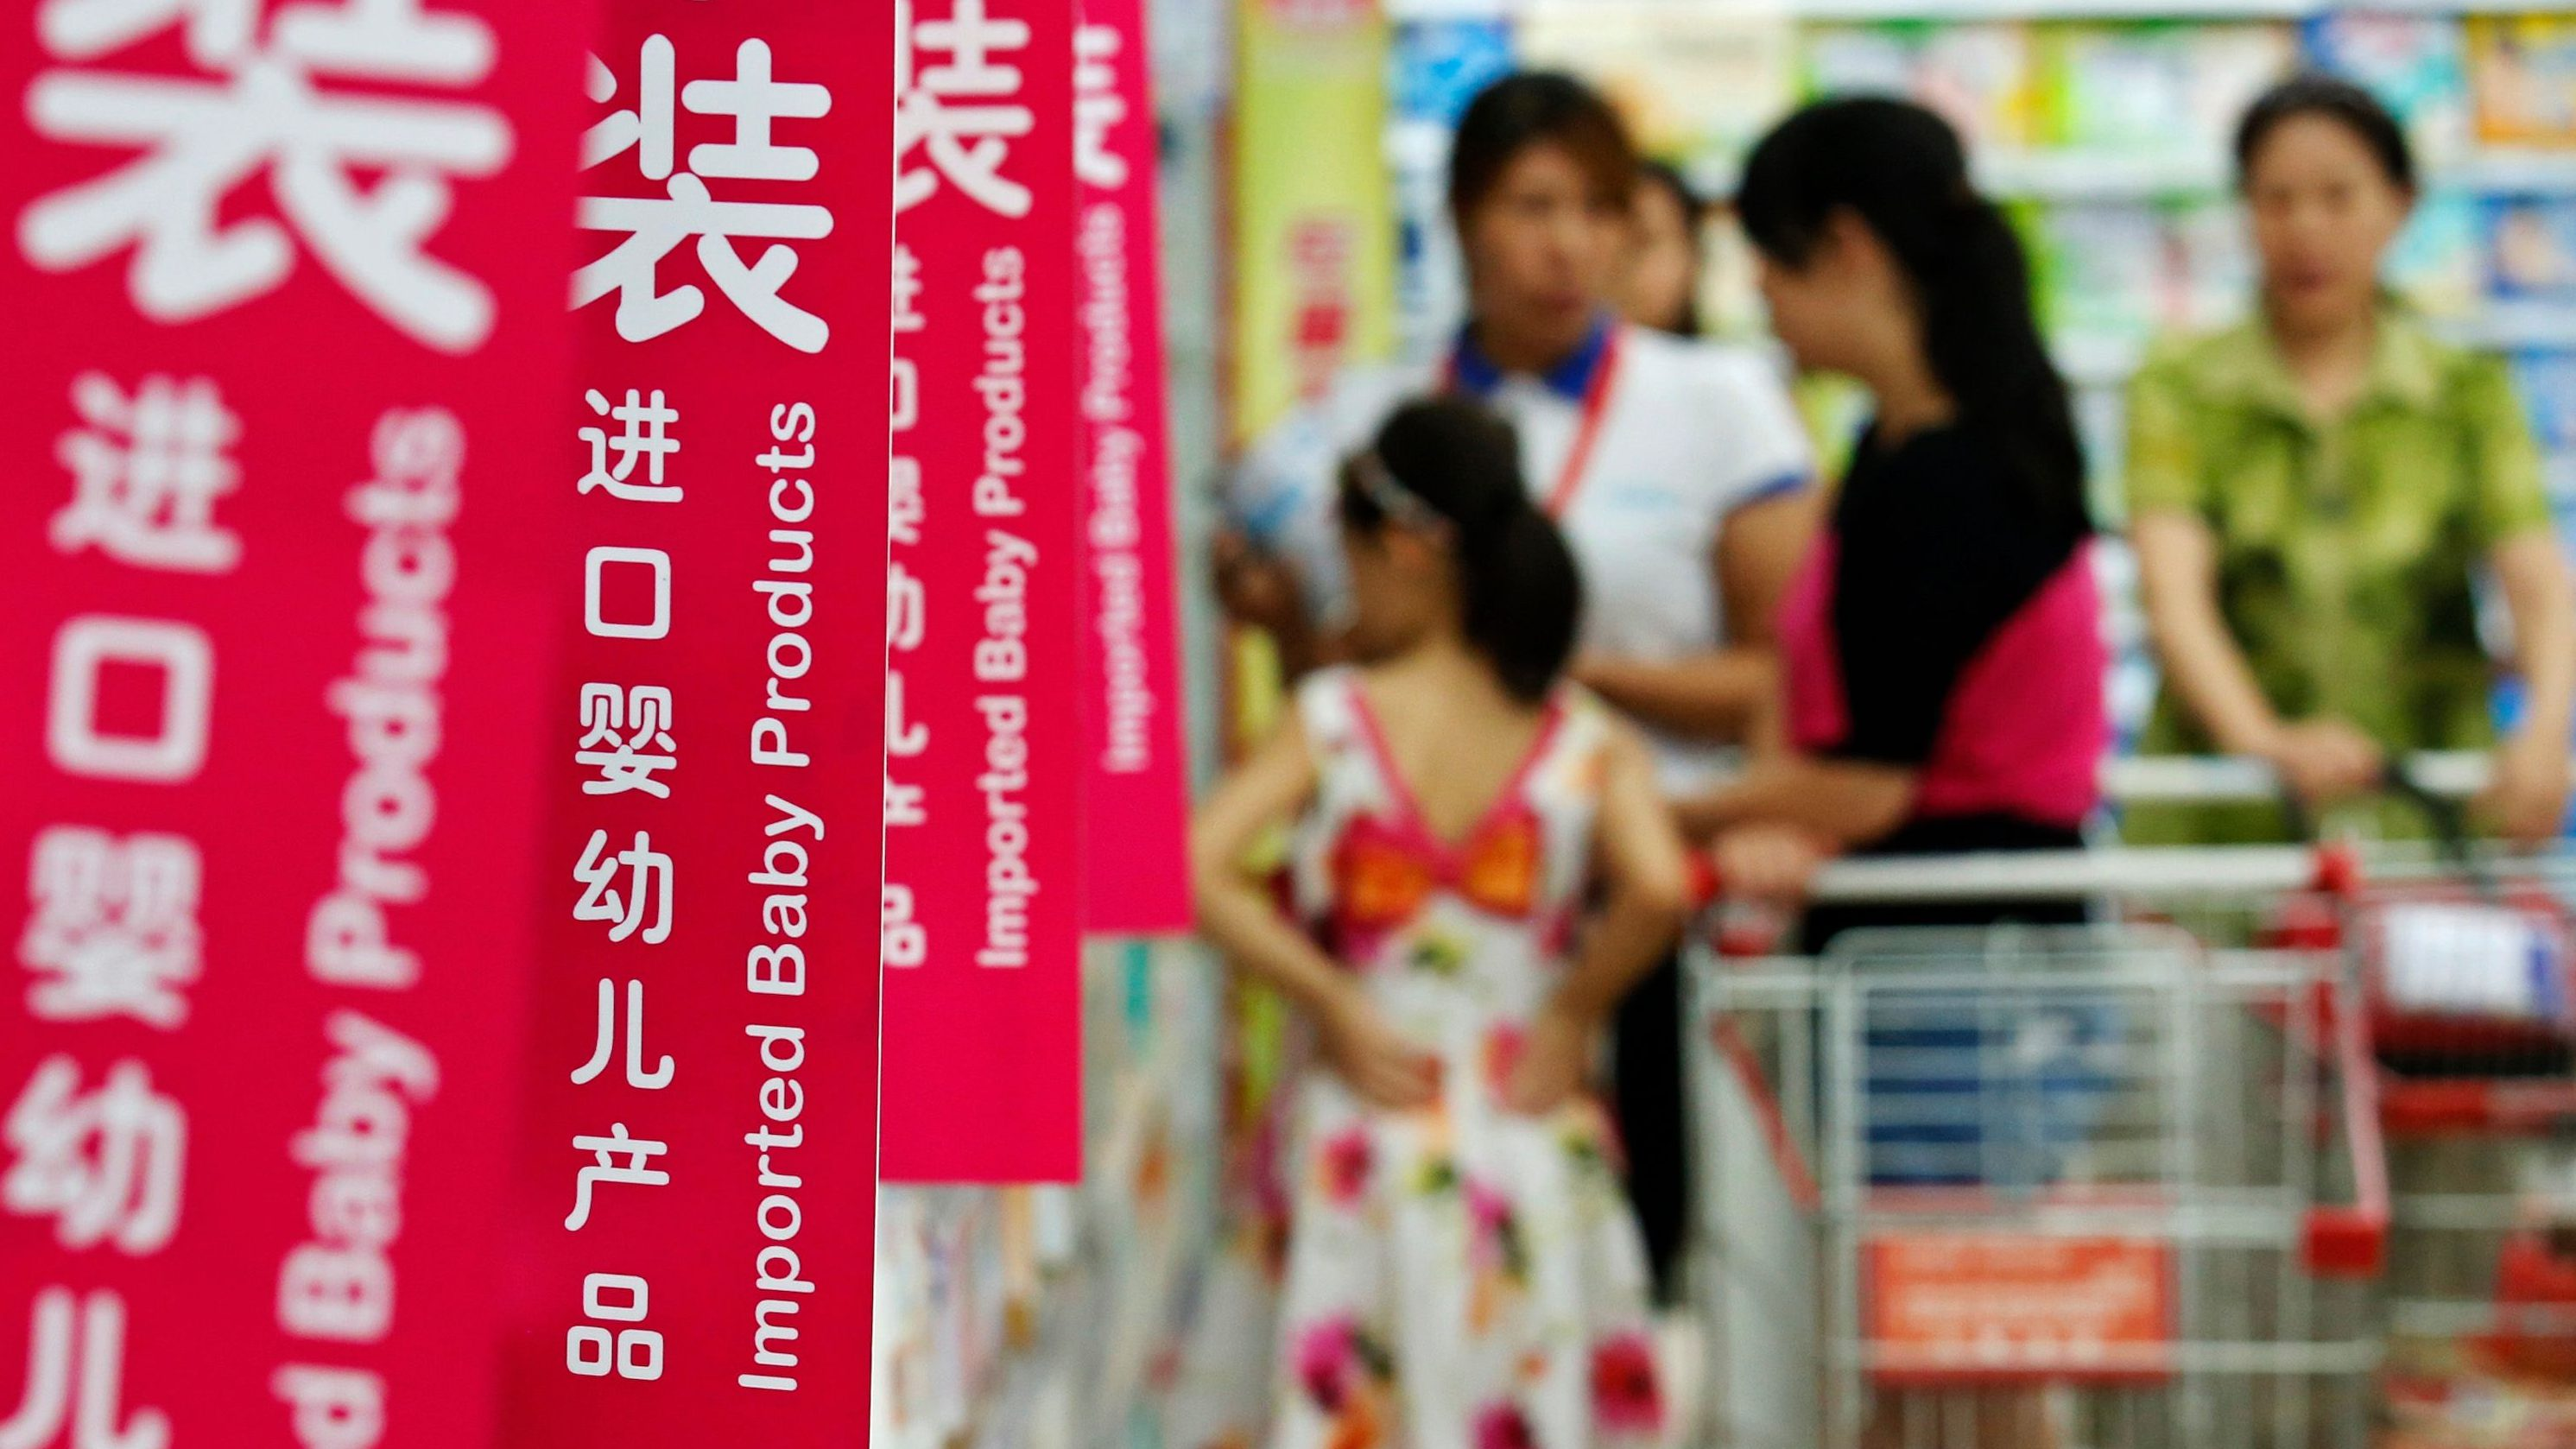 Customers talk to a sales assistant as they shop for milk powder in front of shelves displaying imported baby products at a supermarket in Beijing August 5, 2013. New Zealand's Fonterra apologised on Monday for a milk powder contamination scare in China that has raised safety concerns that threaten New Zealand's $9 billion annual dairy trade and Fonterra's own business in a top market.